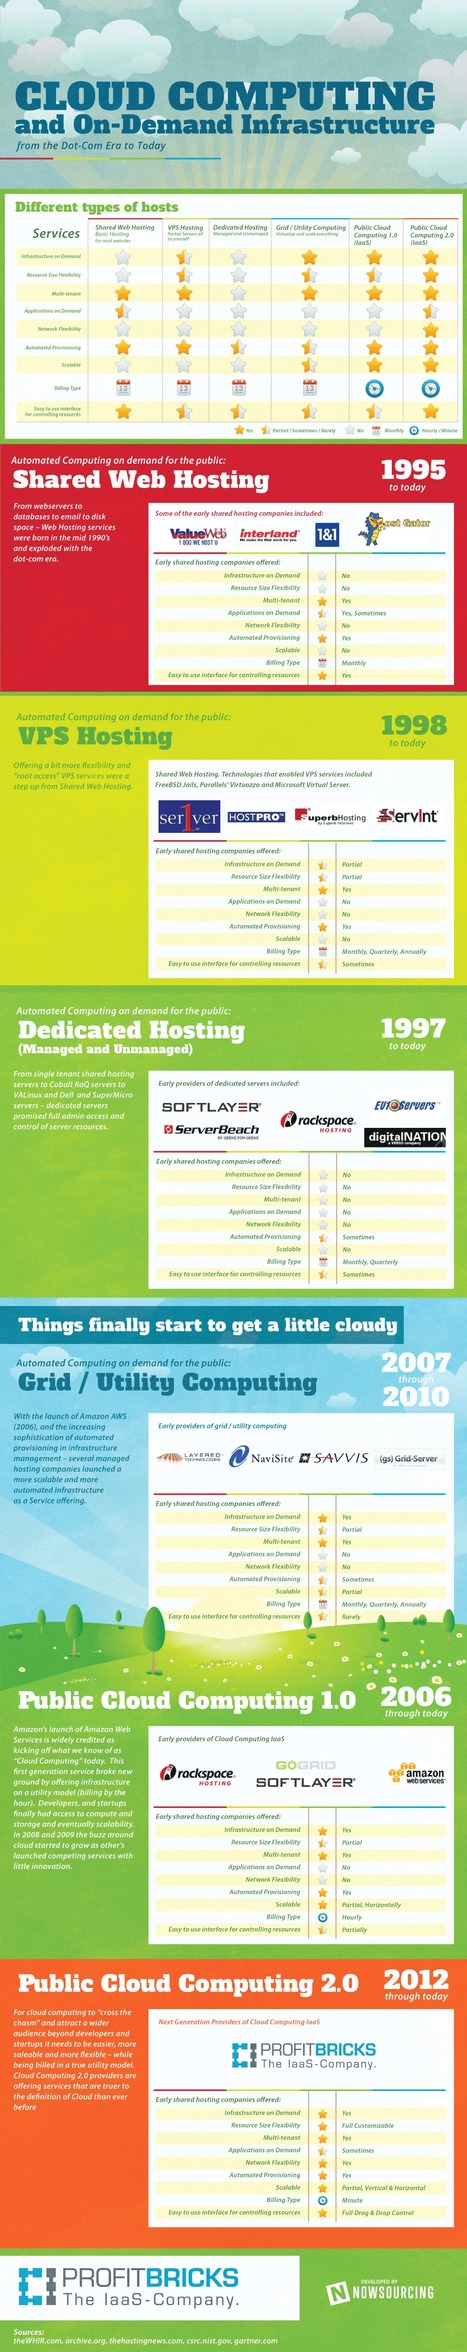 INFOGRAPHIC: Cloud Computing and On-Demand Infrastructure | digitalassetman | Scoop.it